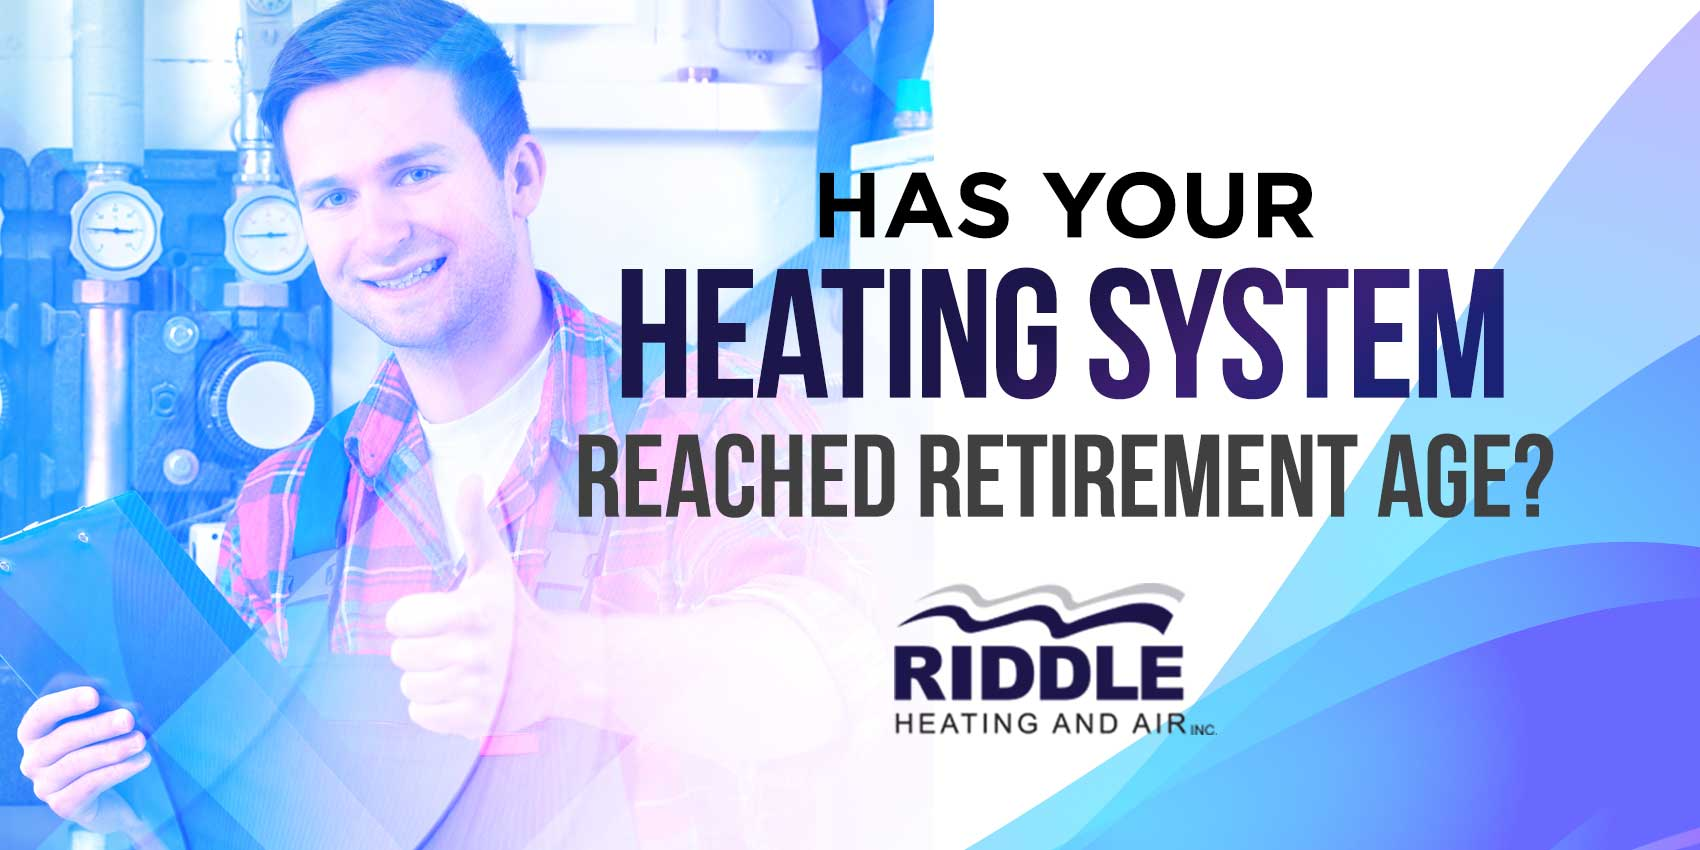 Has Your Heating System Reached Retirement Age?